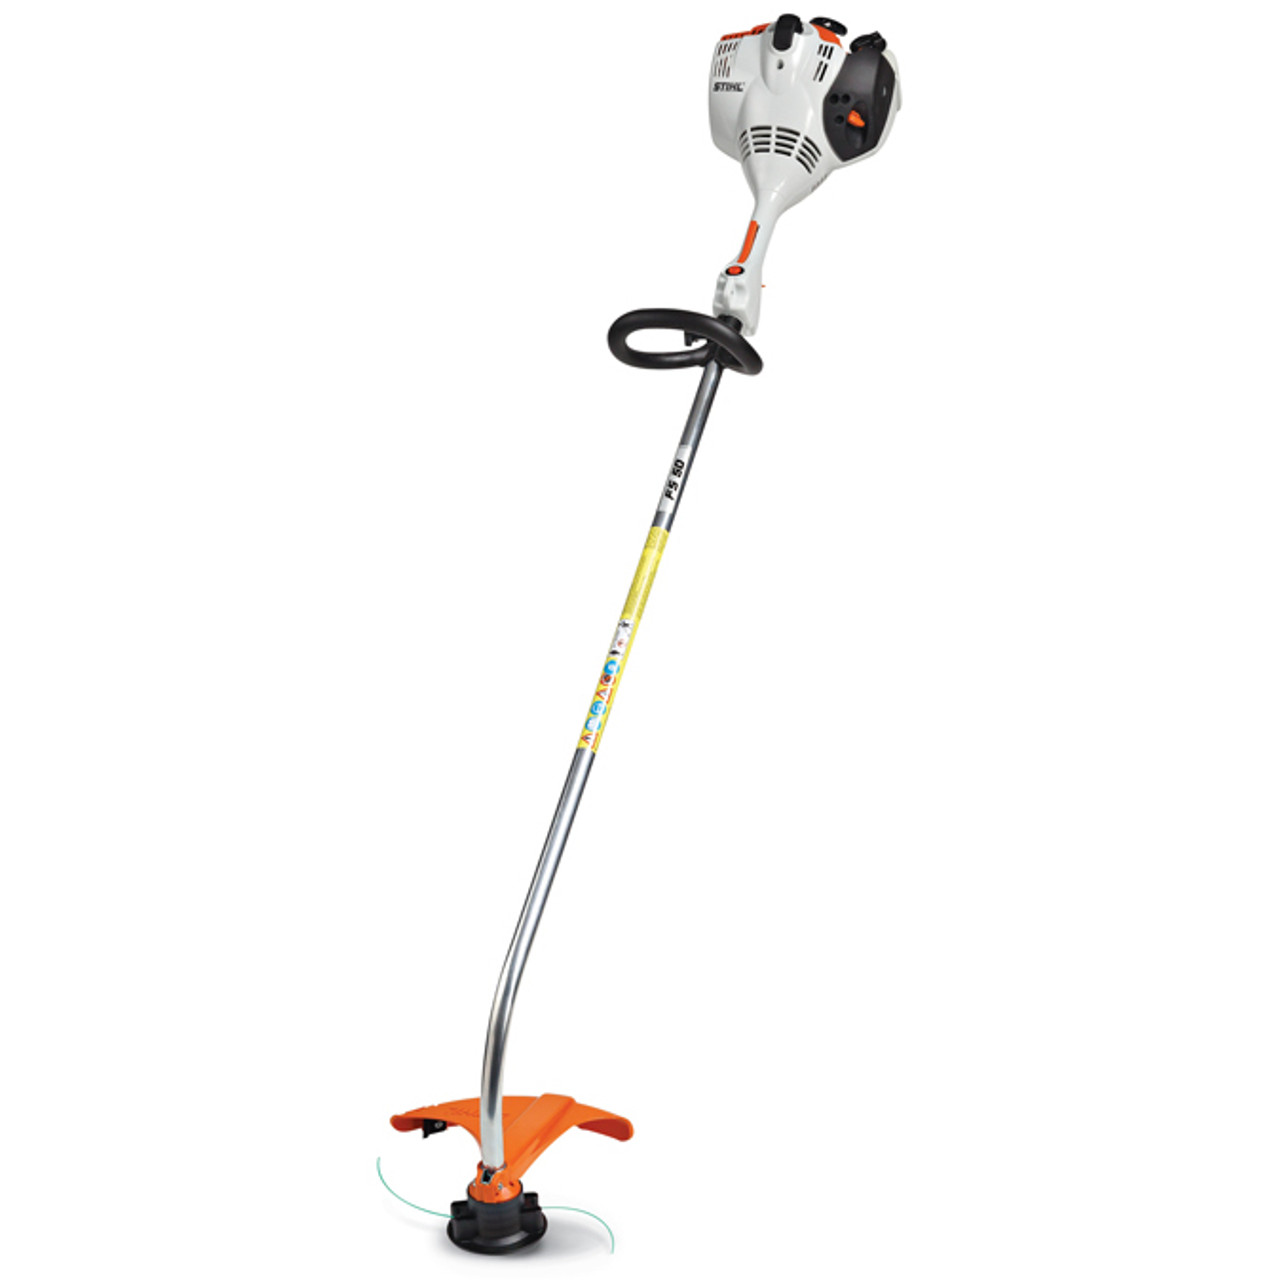 STIHL FS 50 C-E 27.2cc Curved Short Shaft String Trimmer w/ Easy2Start Image